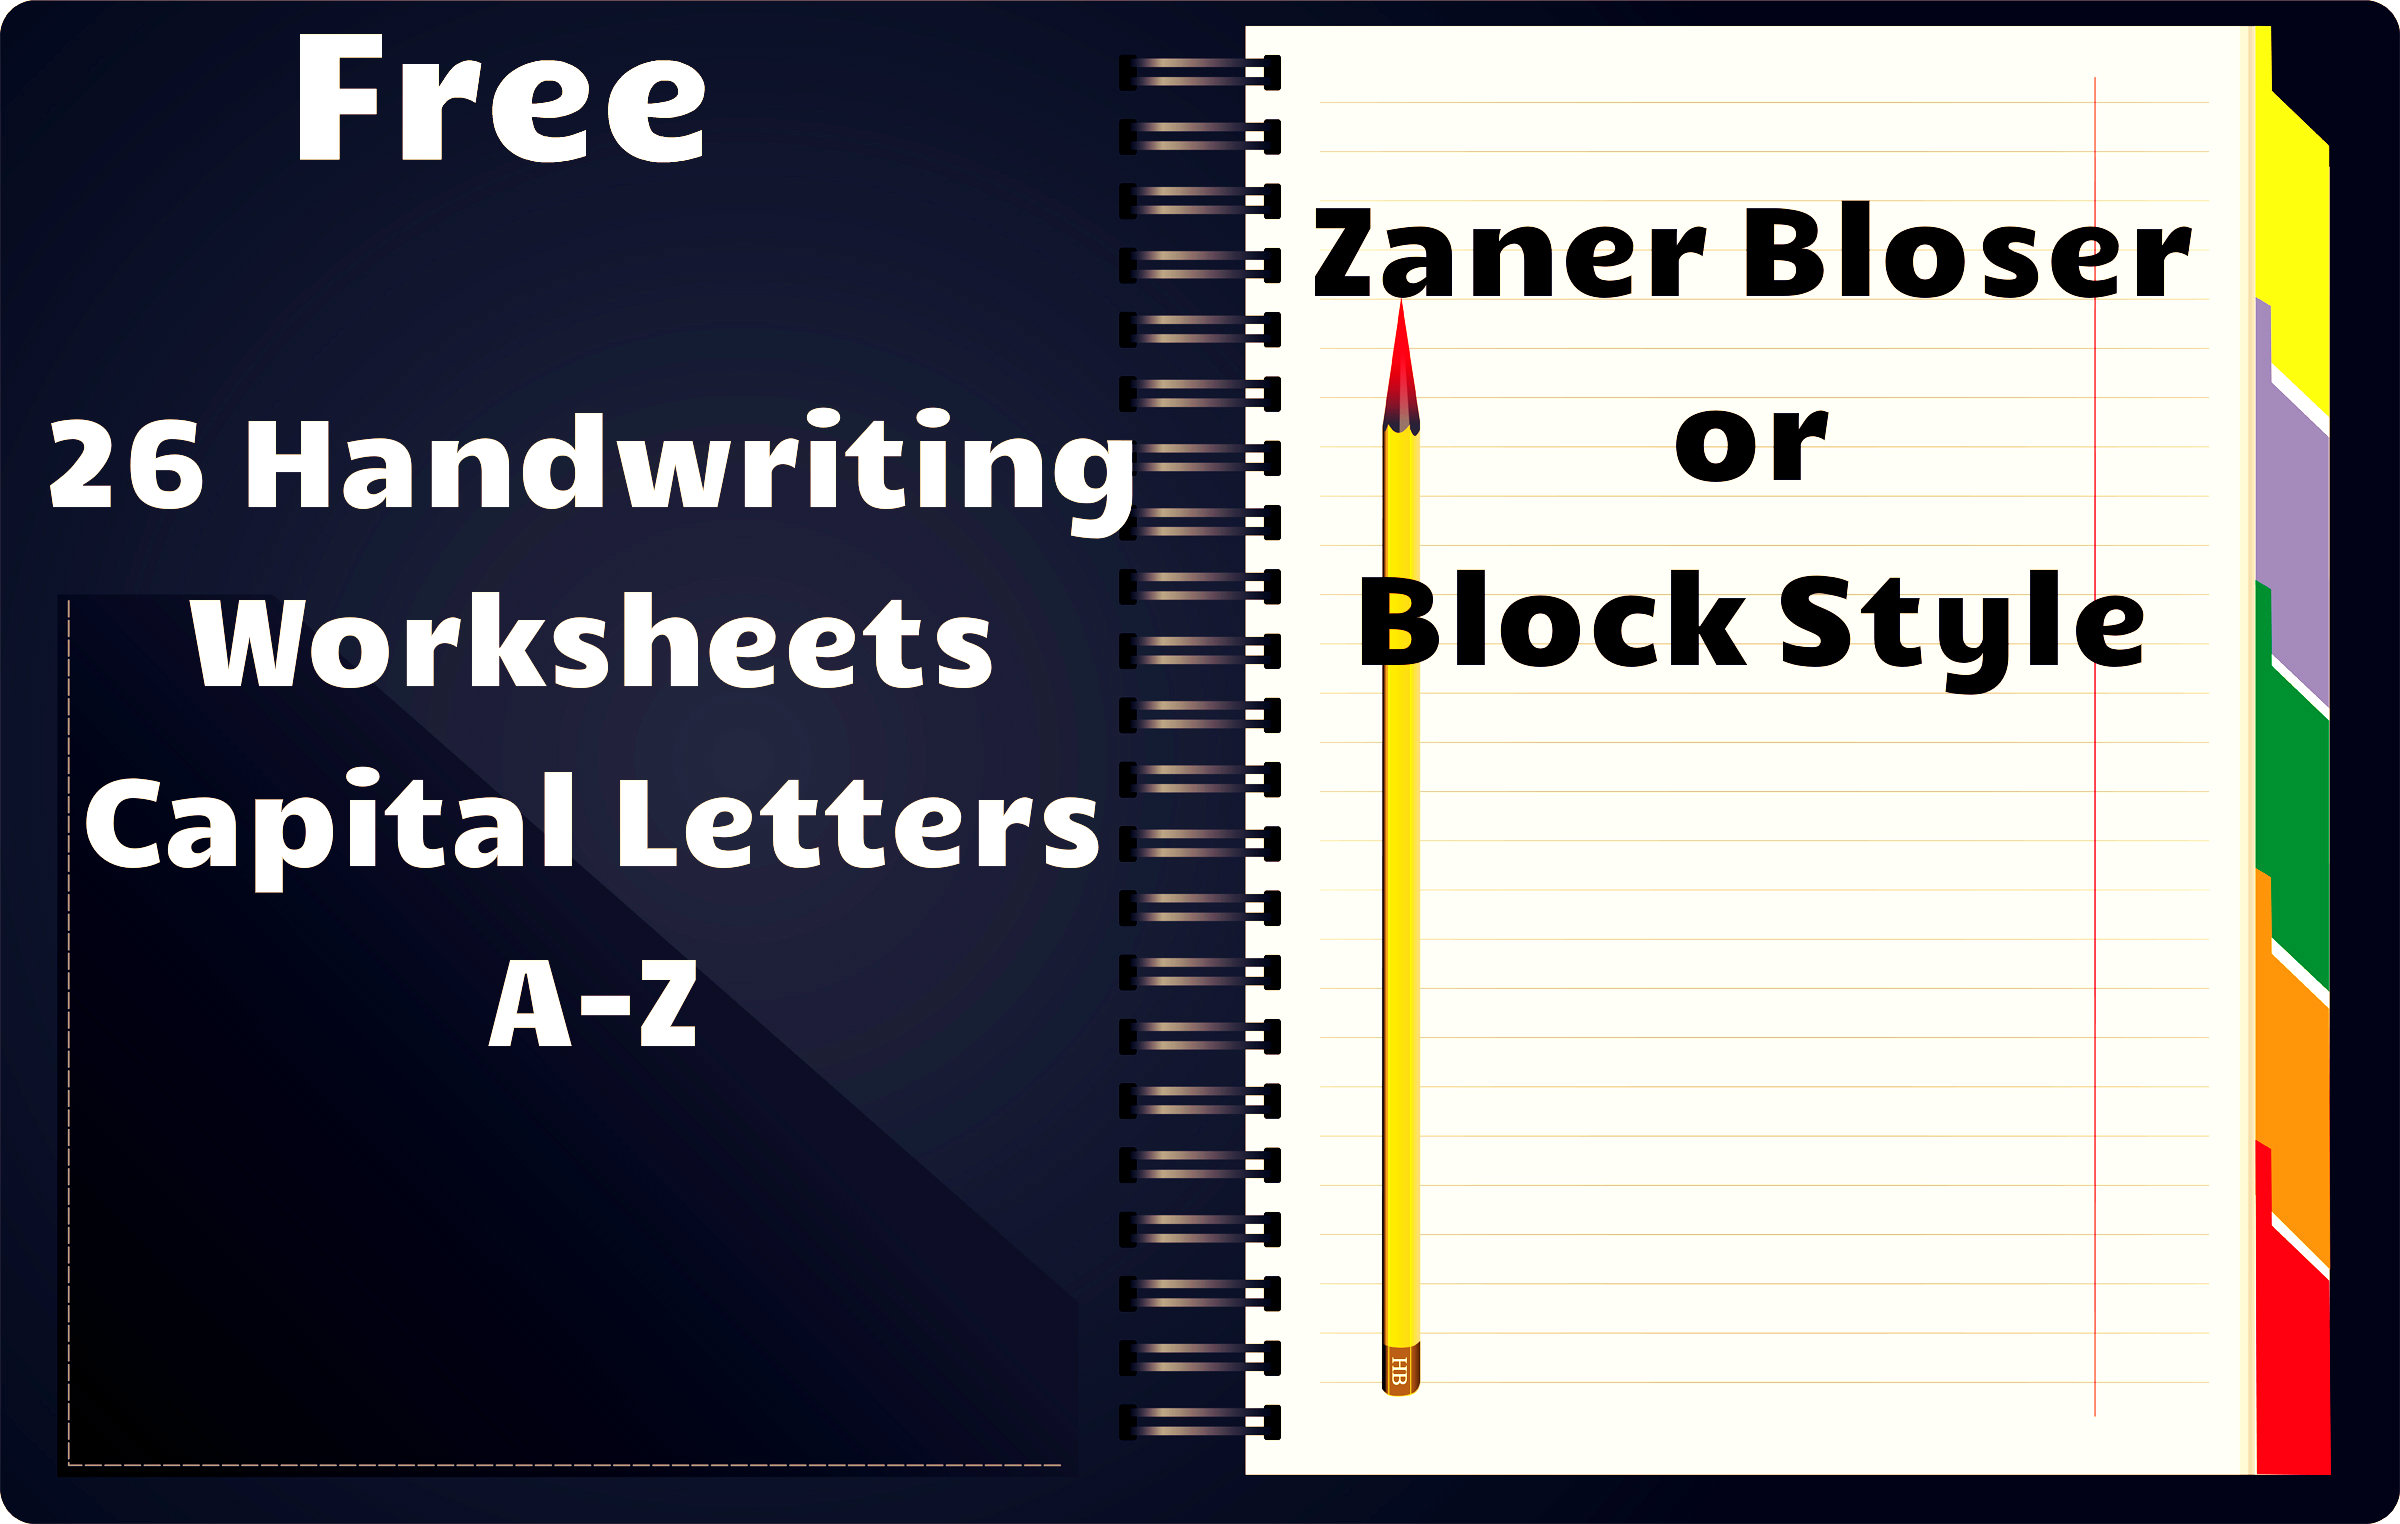 Free Handwriting Worksheets Zaner Bloser Style